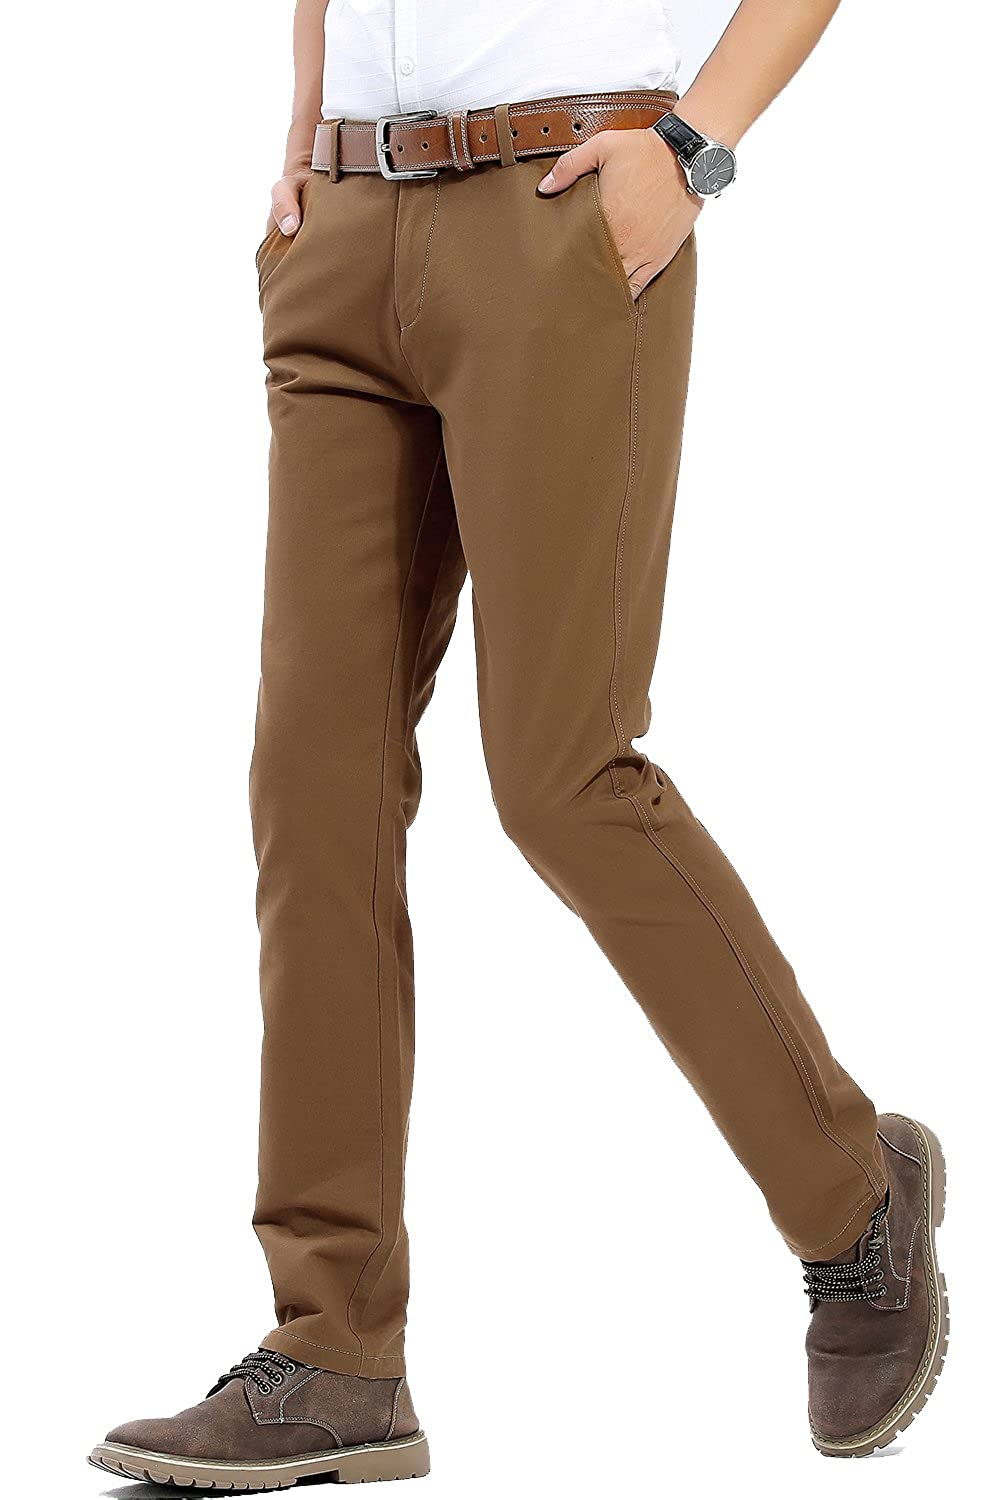 7263200f273 FLY HAWK Mens Slim Fit Tapered Flat Front Casual Pants 100% Cotton Work  Pants